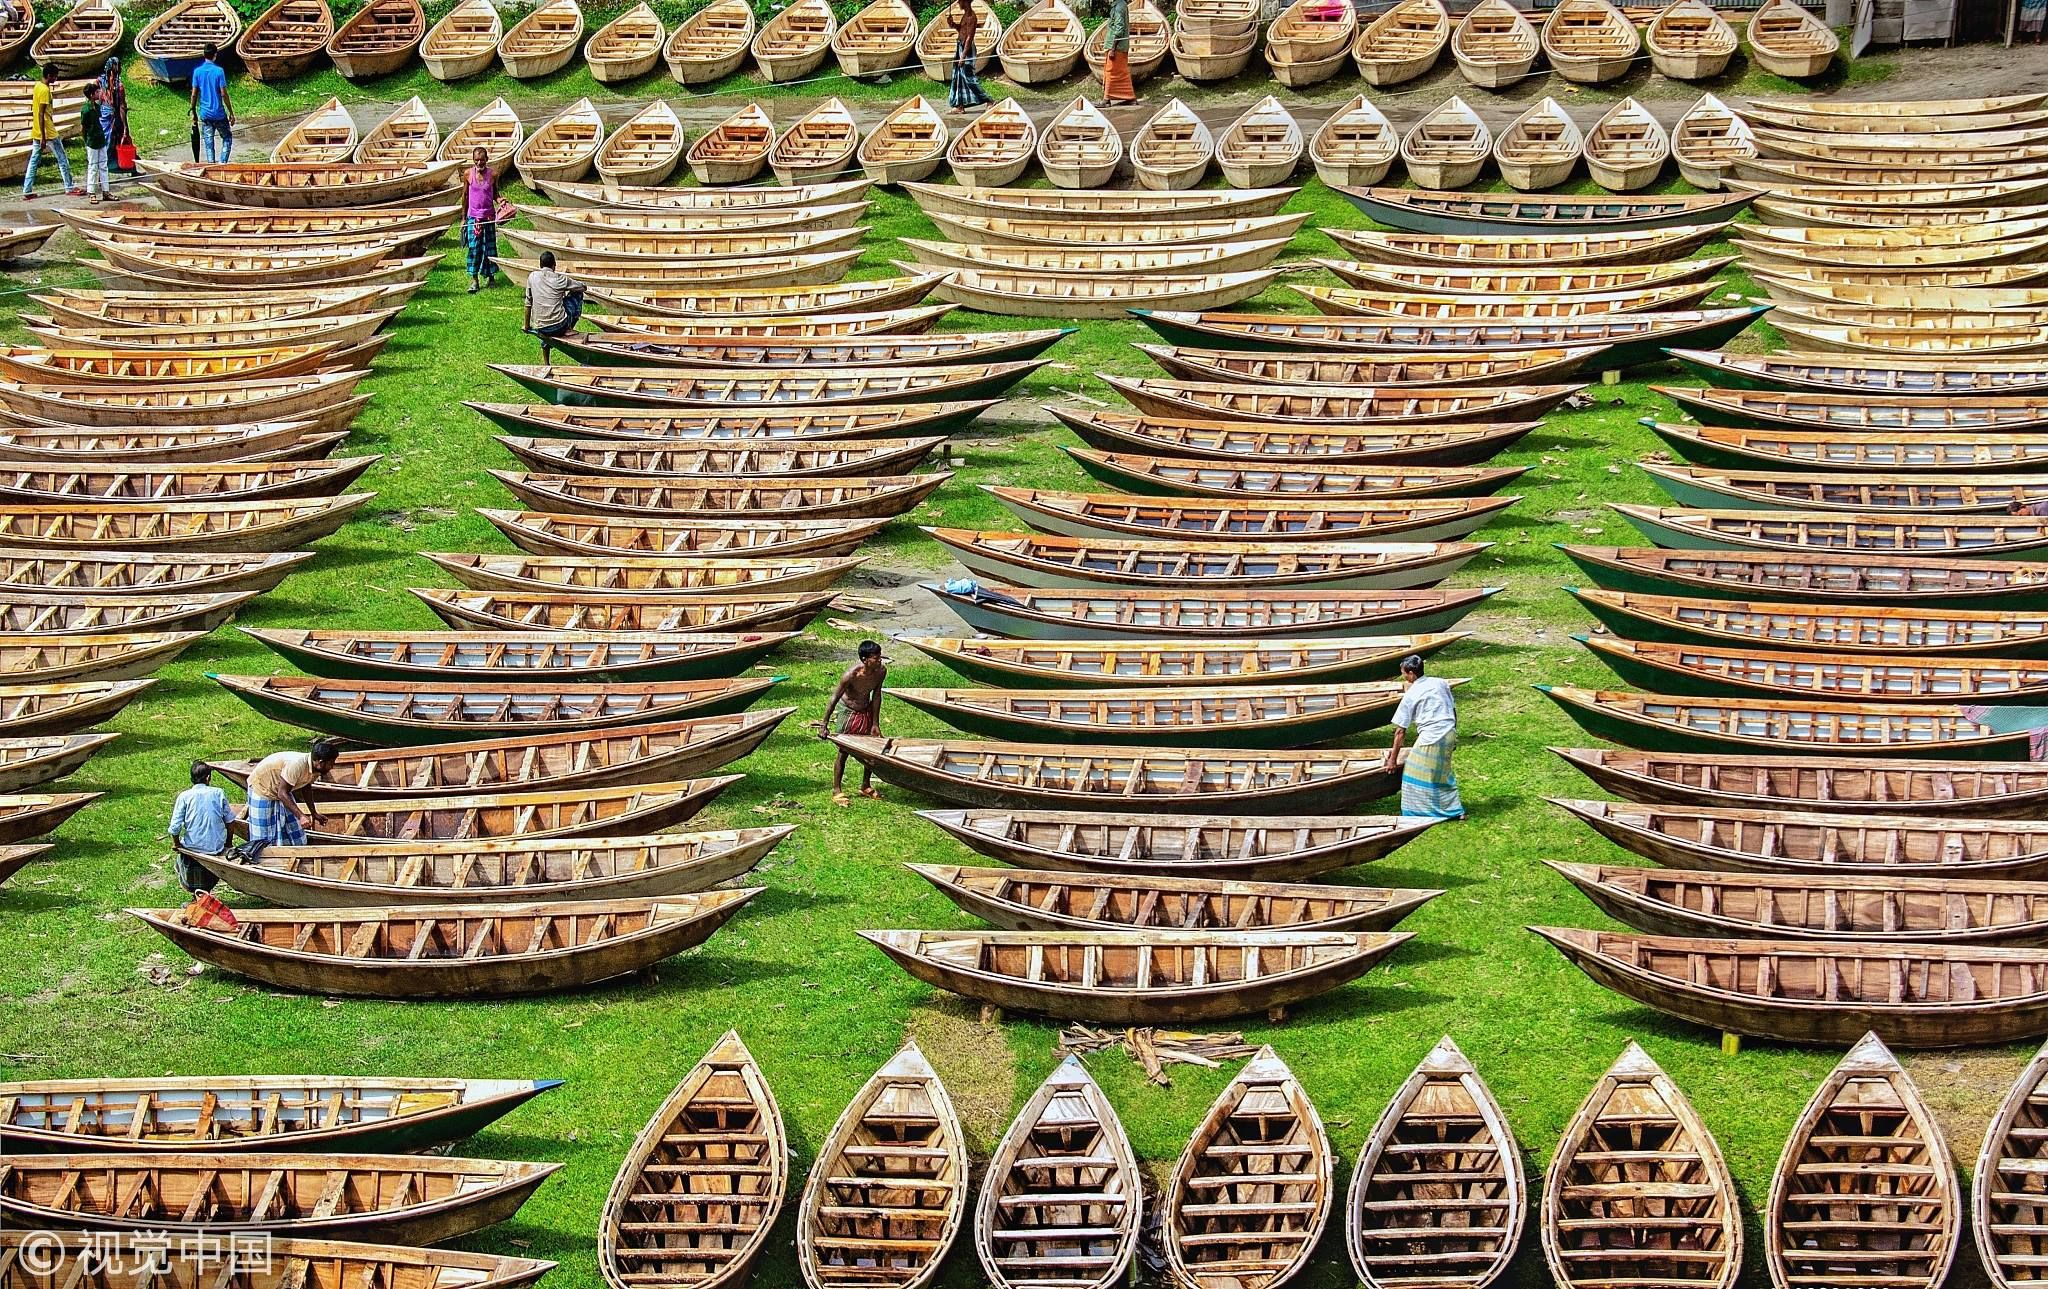 Hundreds of wooden boats are prepared for rainy season in